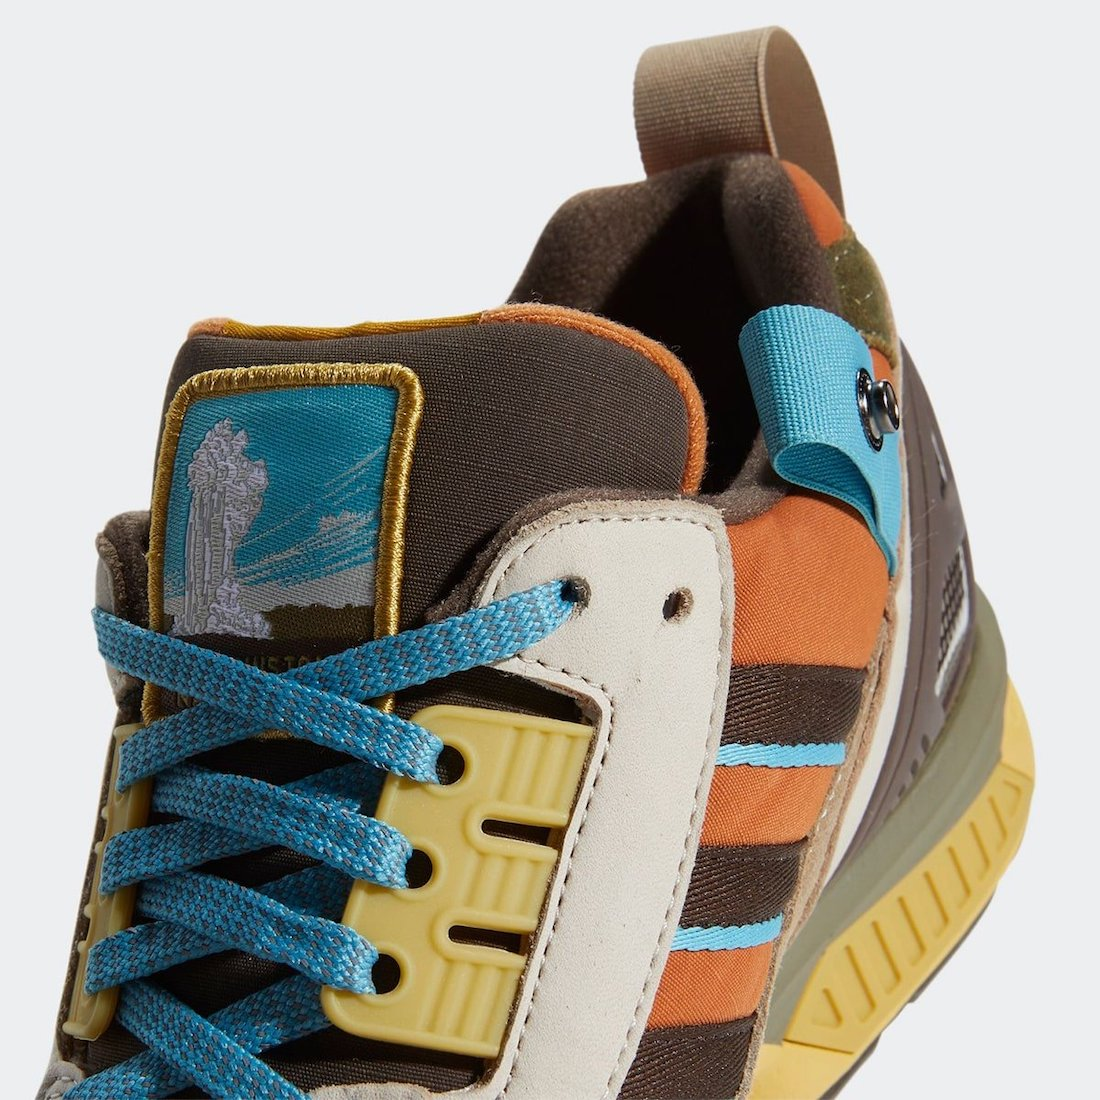 National Park Foundation adidas ZX 8000 Yellowstone FY5168 Release Date